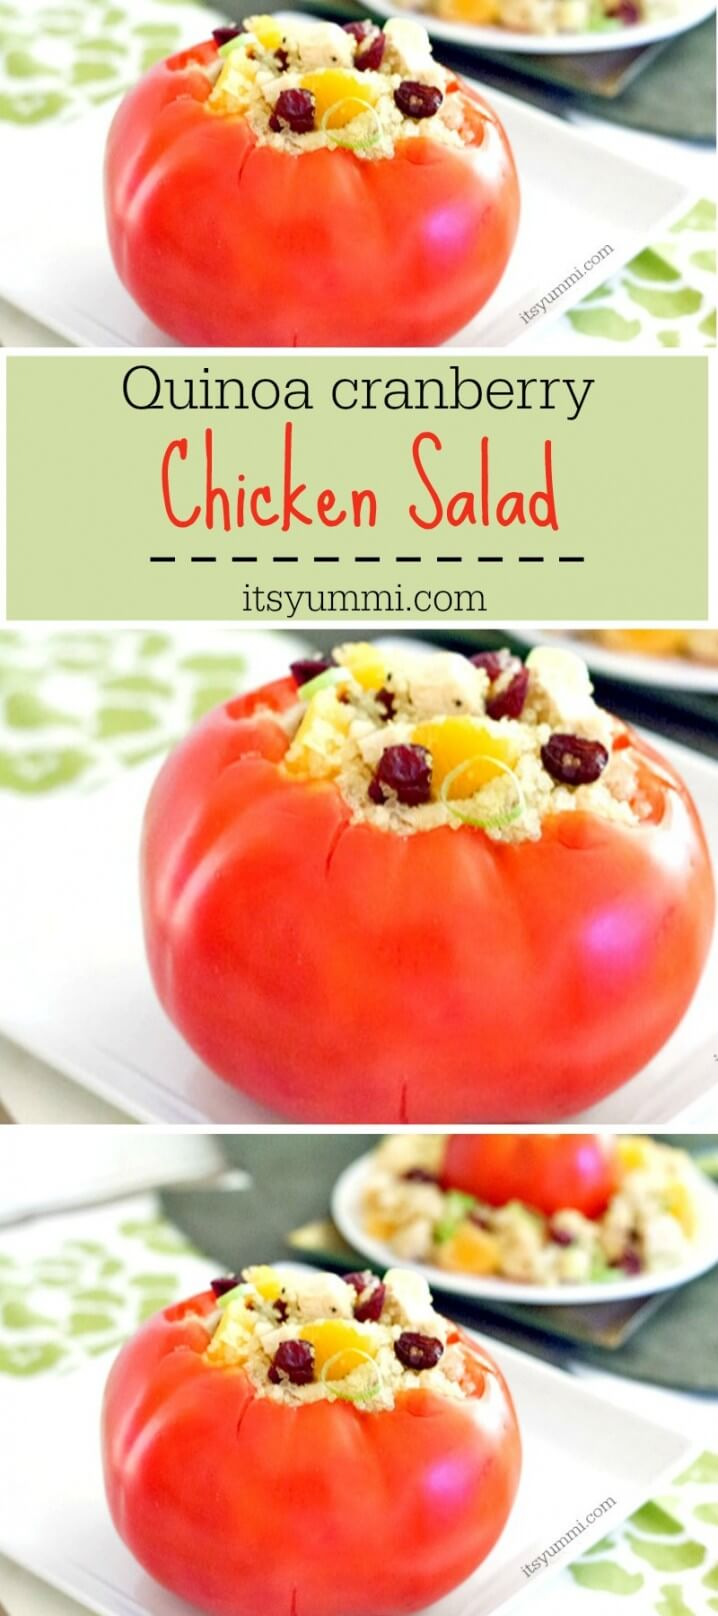 Quinoa Cranberry Chicken Salad Recipe - A complete meal with whole grain quinoa and chicken salad stuffed into a tomato. Perfect for a light, easy dinner! Get the recipe from ItsYummi.com